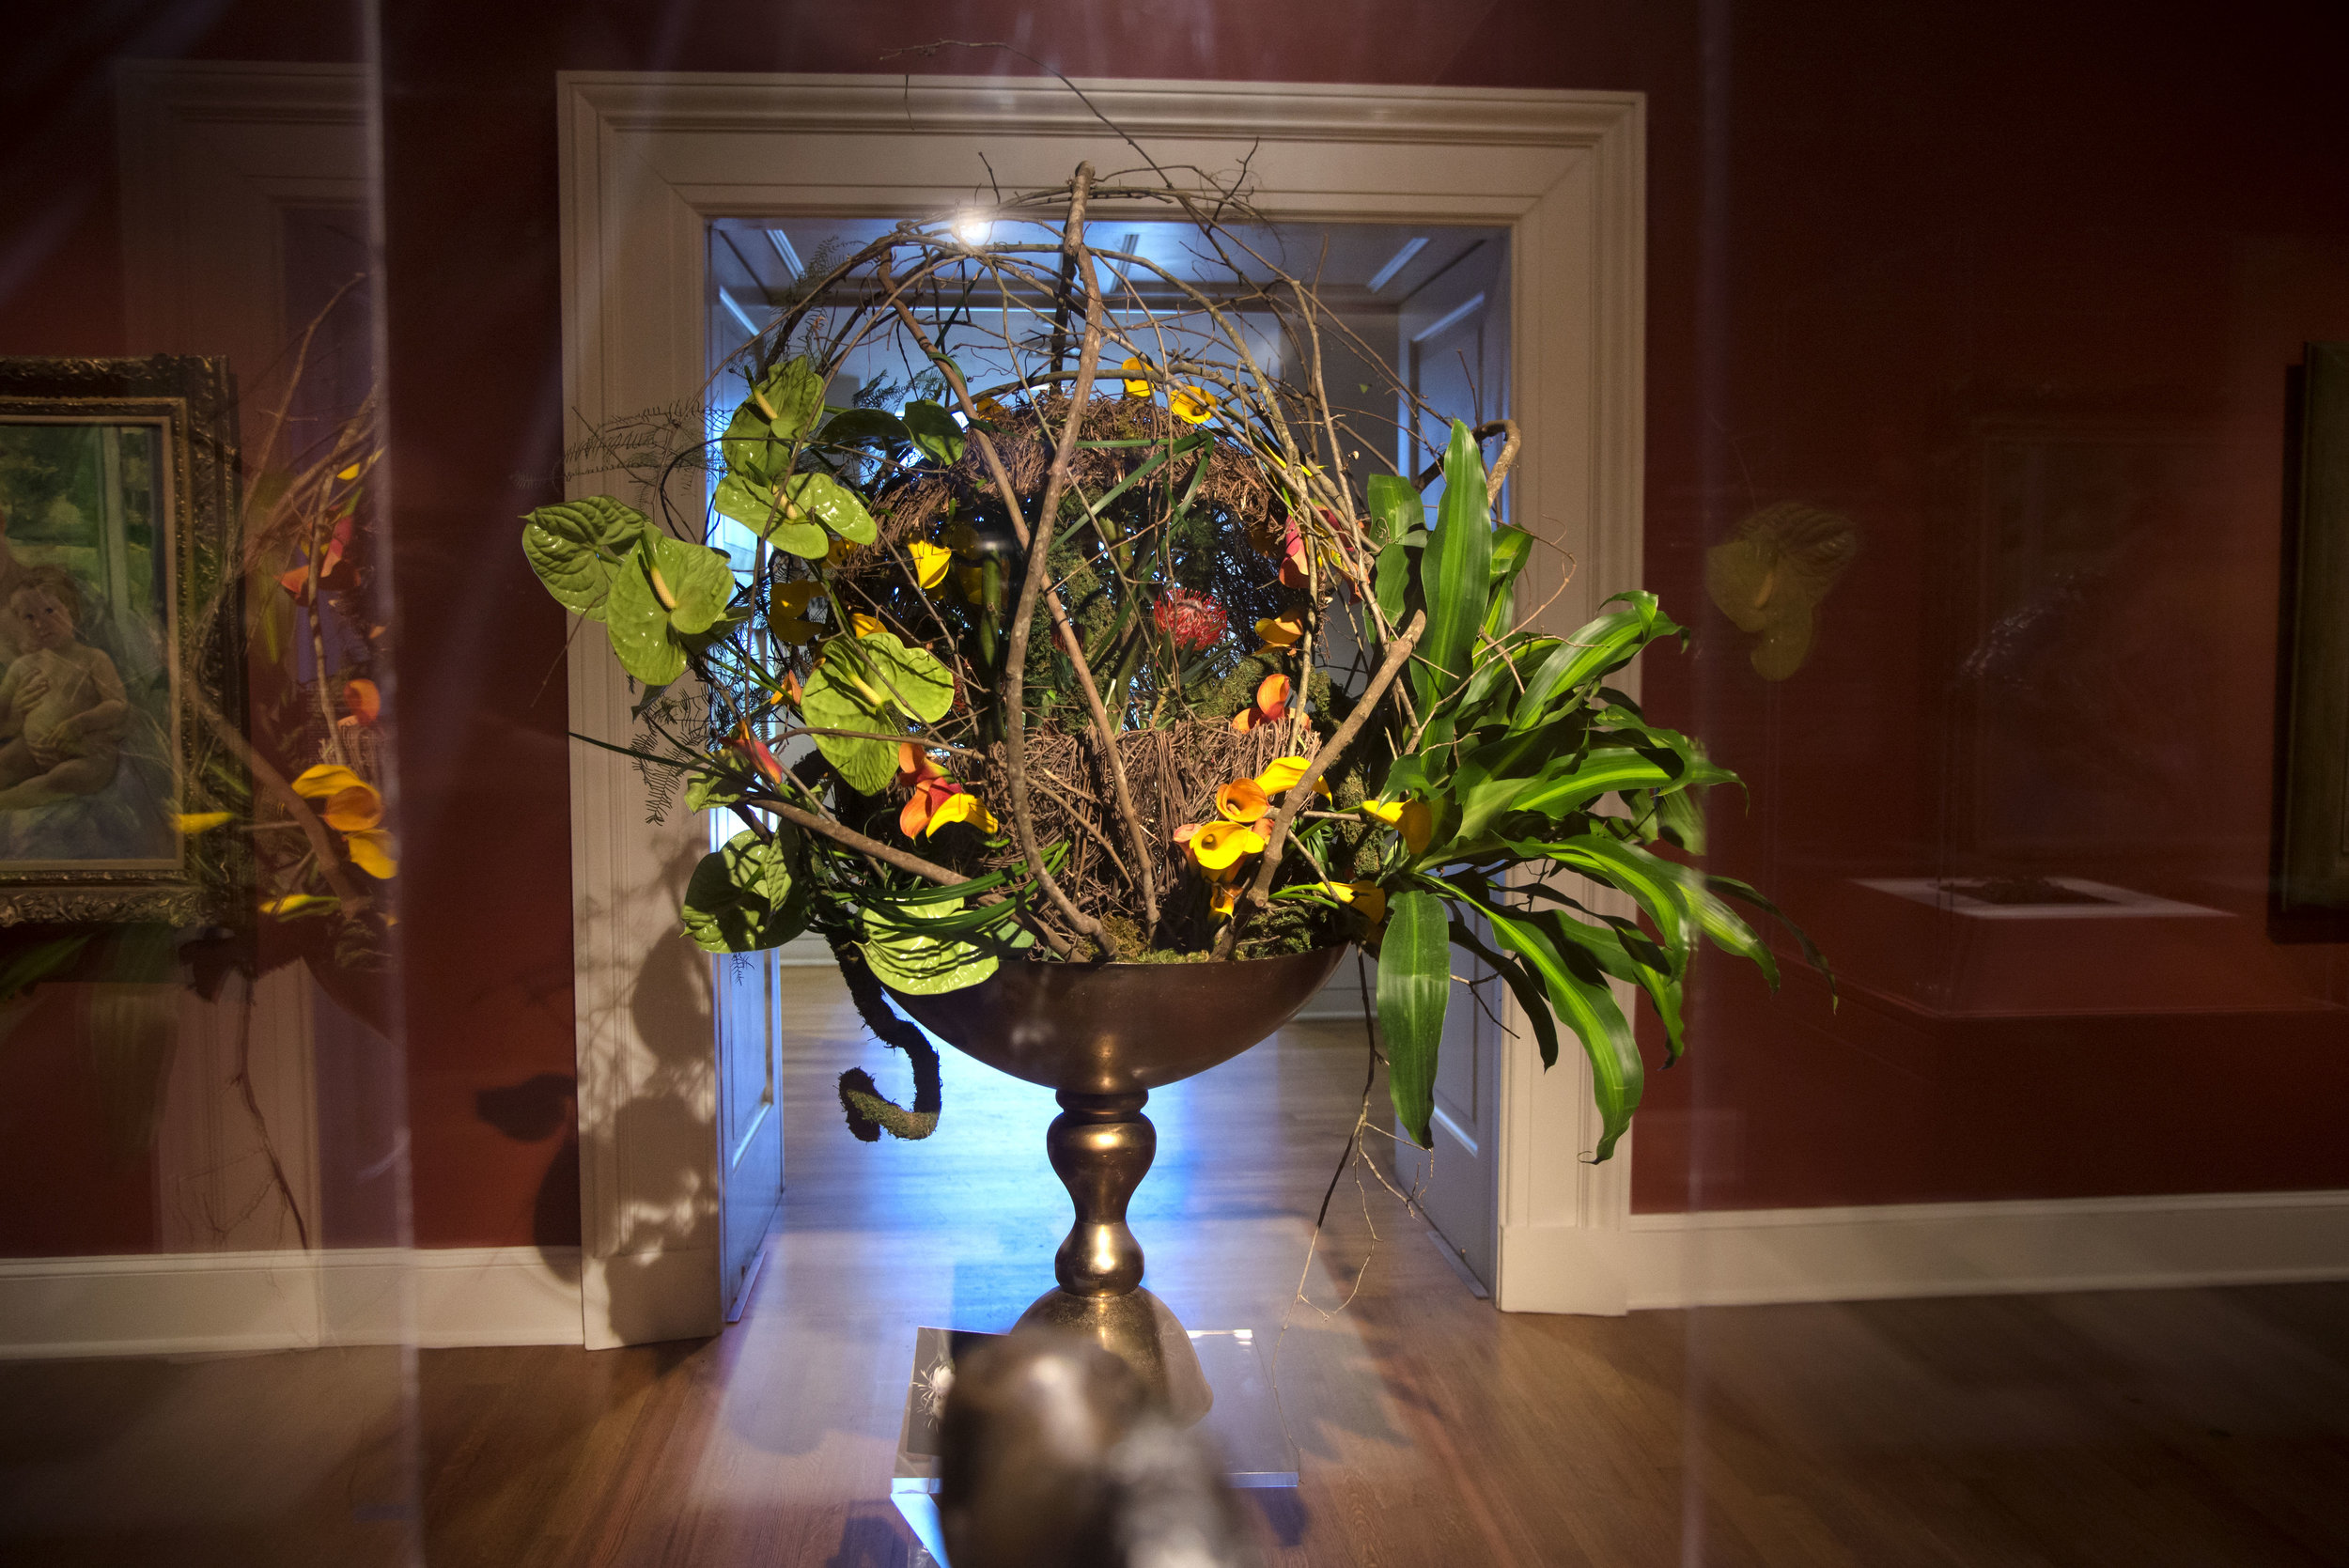 Art in bloom new orleans NOMA mitchs flowers denys mertz stephanie tarrant monique chauvin 00.jpg